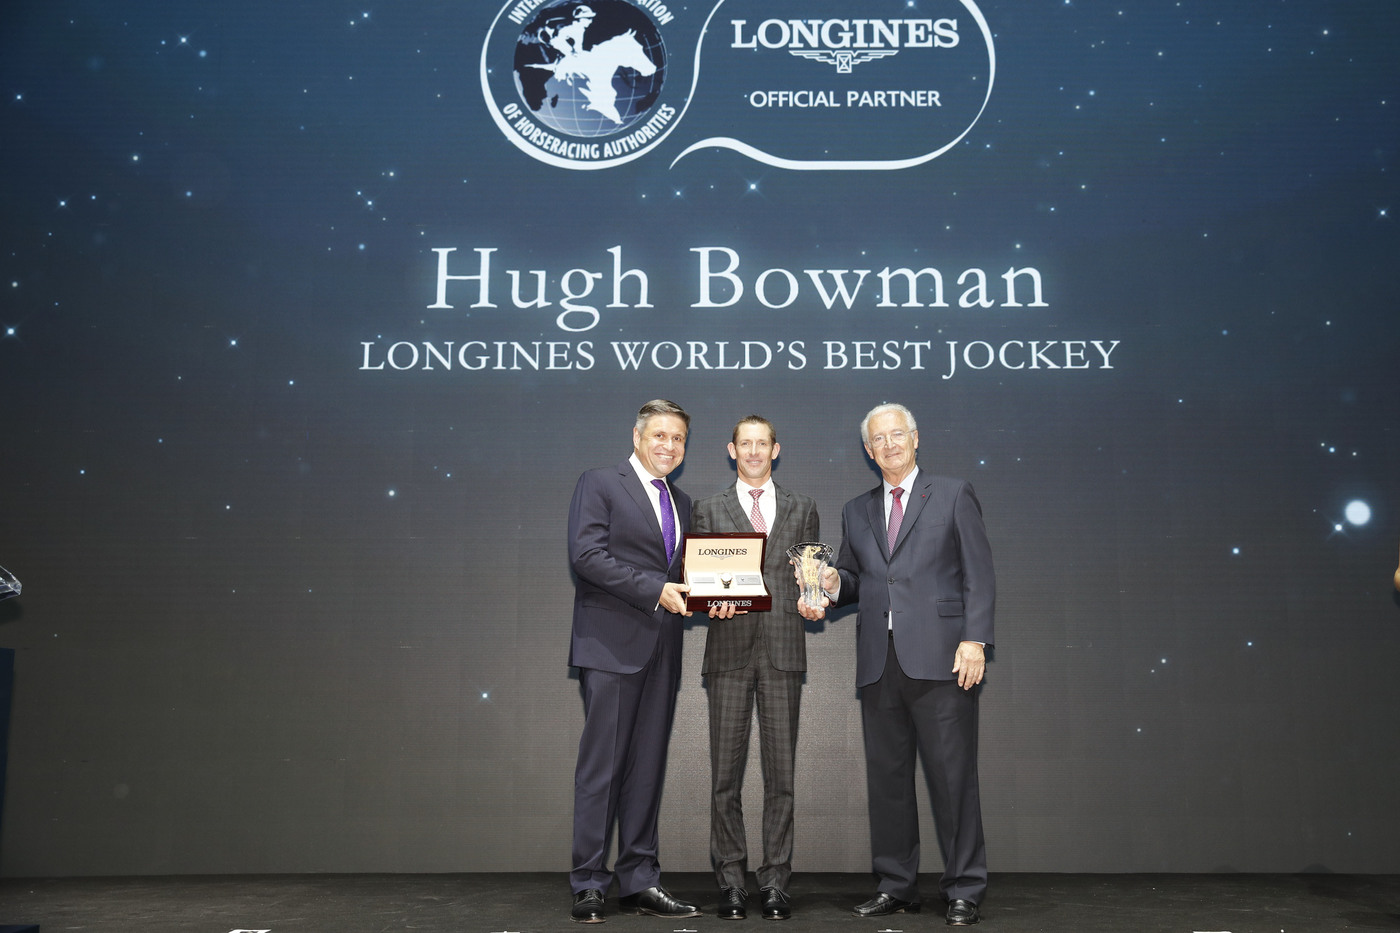 Longines Flat Racing Event: Australian Hugh Bowman receives the 2017 Longines World's Best Jockey Award in Hong Kong 5